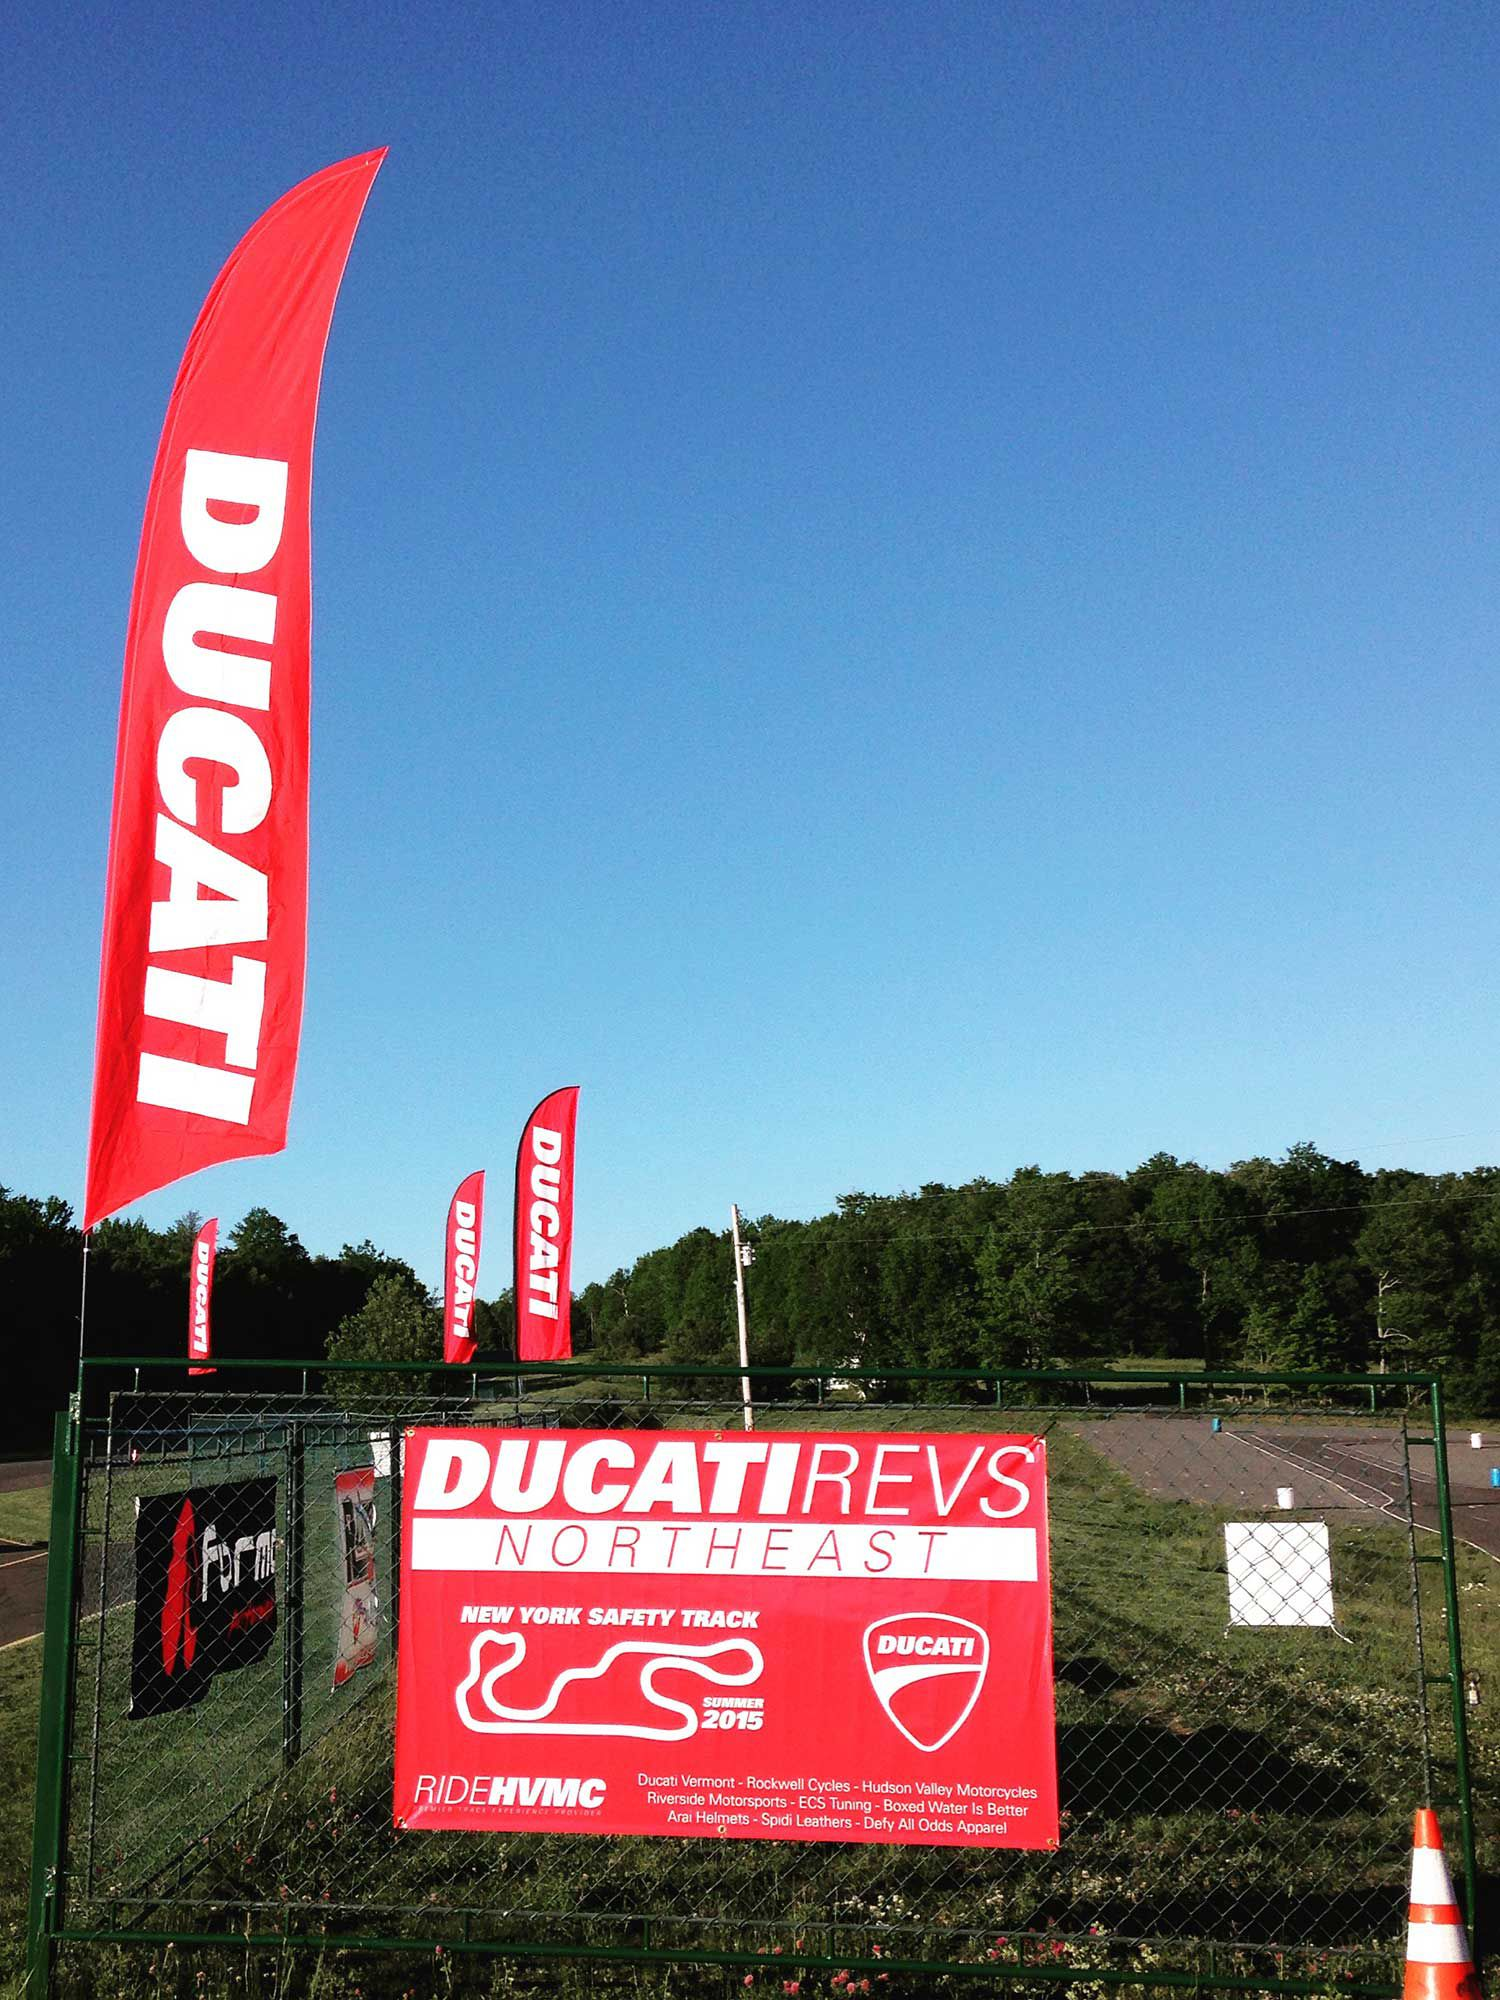 You'll get professional instruction and the chance to demo new Ducati motorcycles.